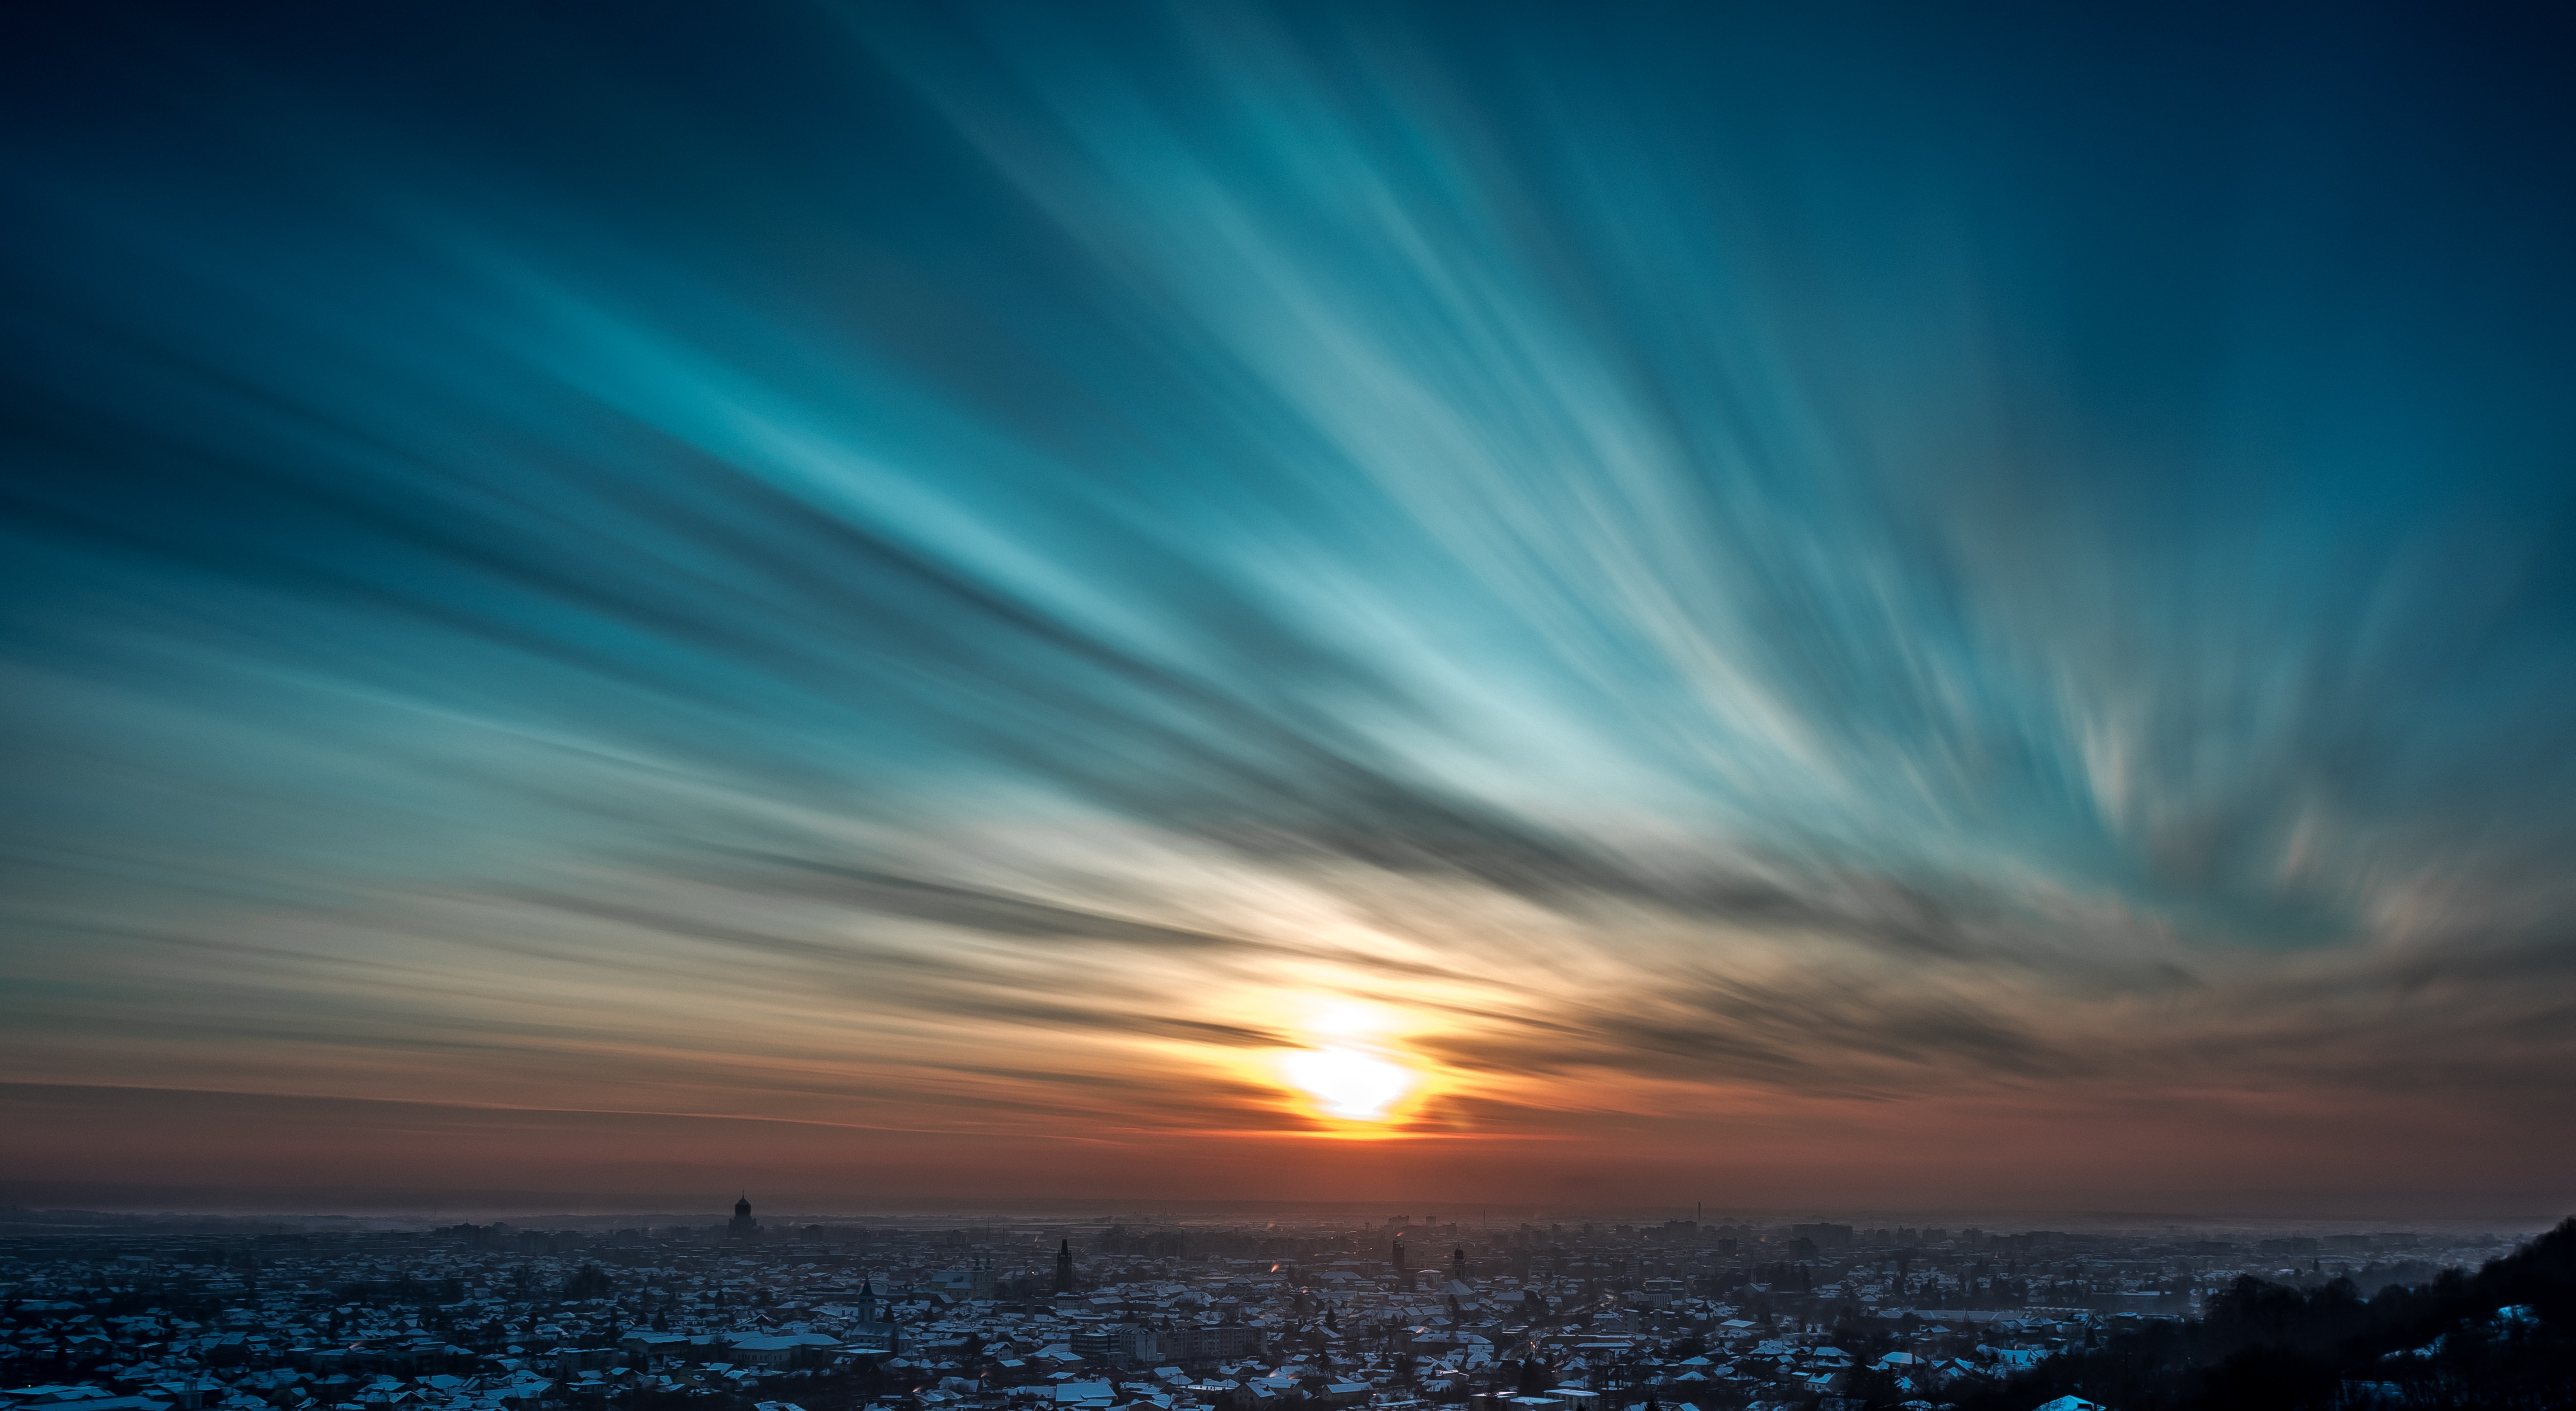 A long exposure shot of the clouds and sky at sunset over the city of Baia Mare, Romania